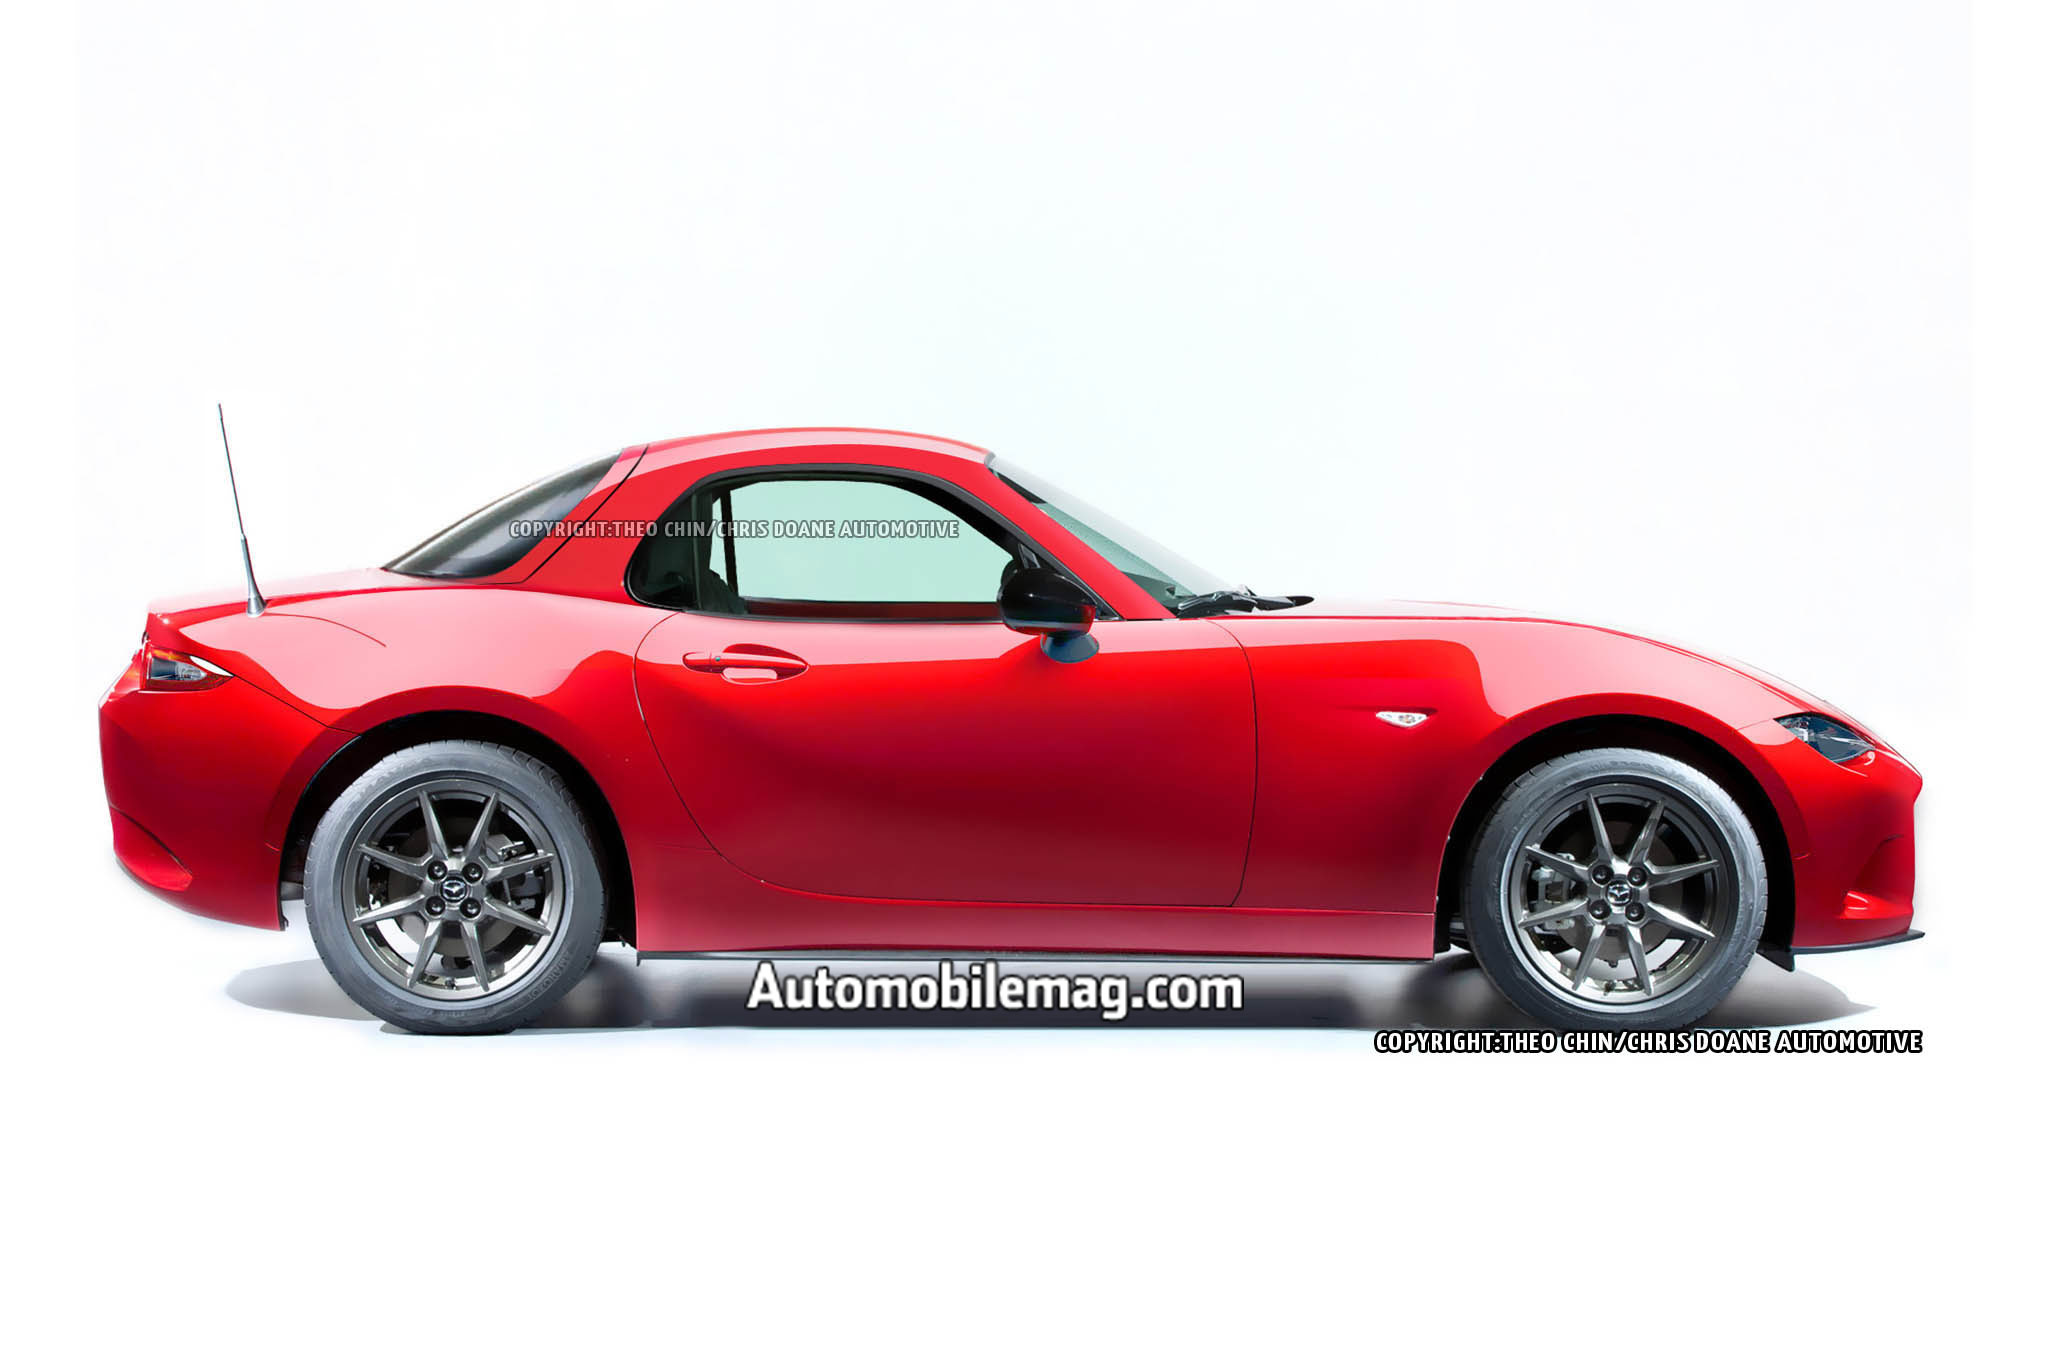 should mazda build an mx-5 miata coupe?